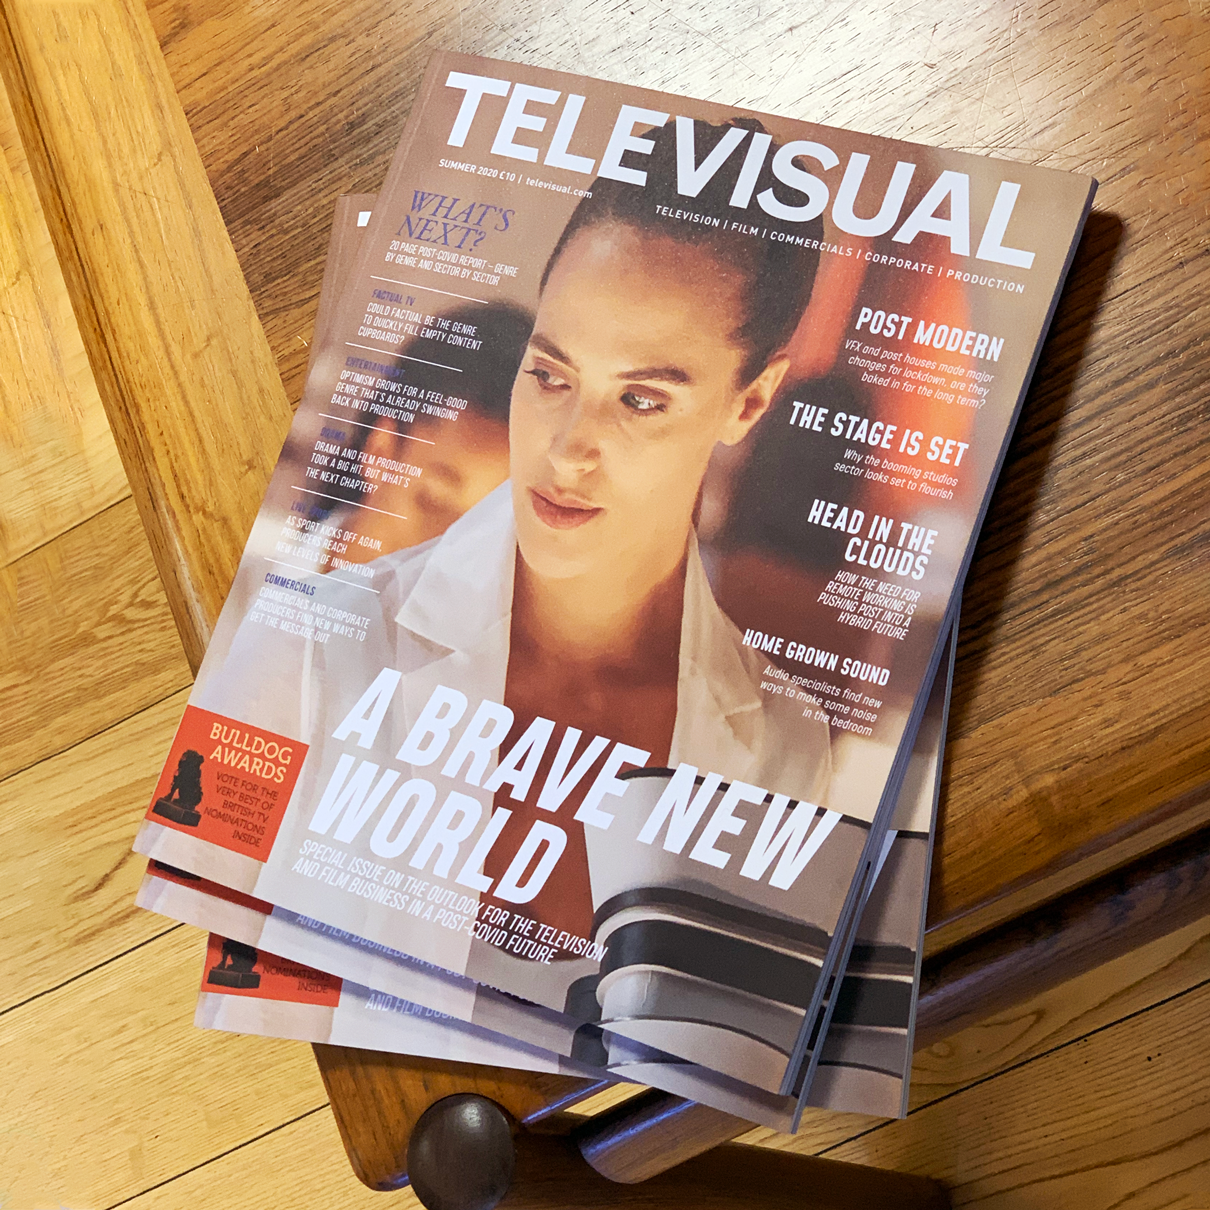 Televisual – The Summer Issue